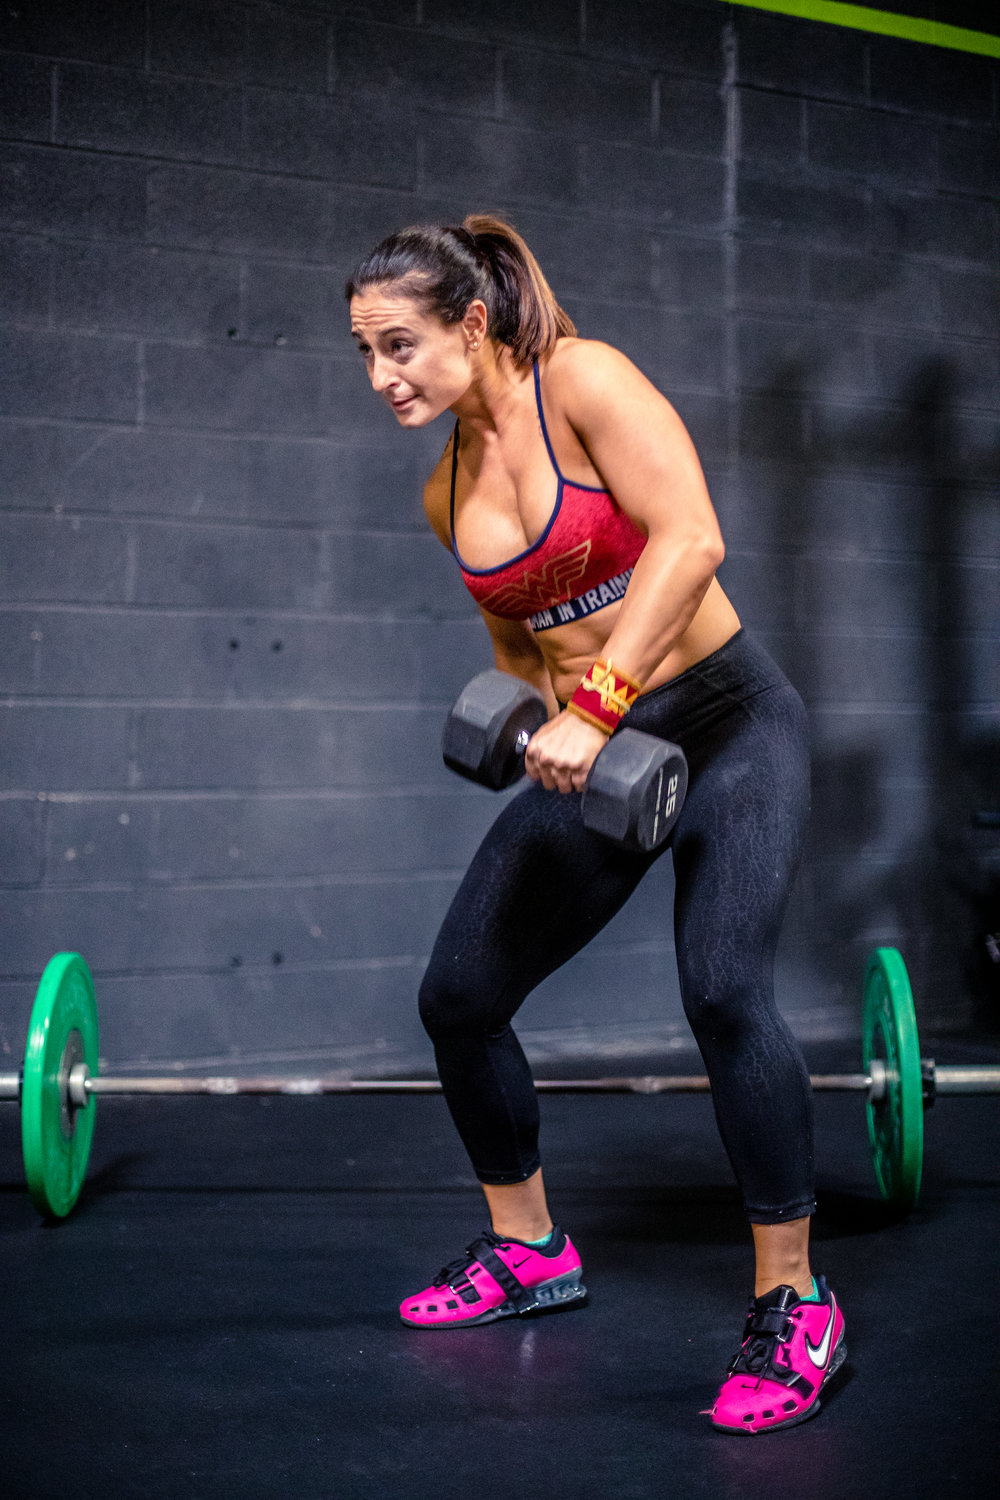 dumbell-snatch-crossfit-girl-girls-who-lift-open-2017-rogue-dumbells-everyday-lifters.jpg